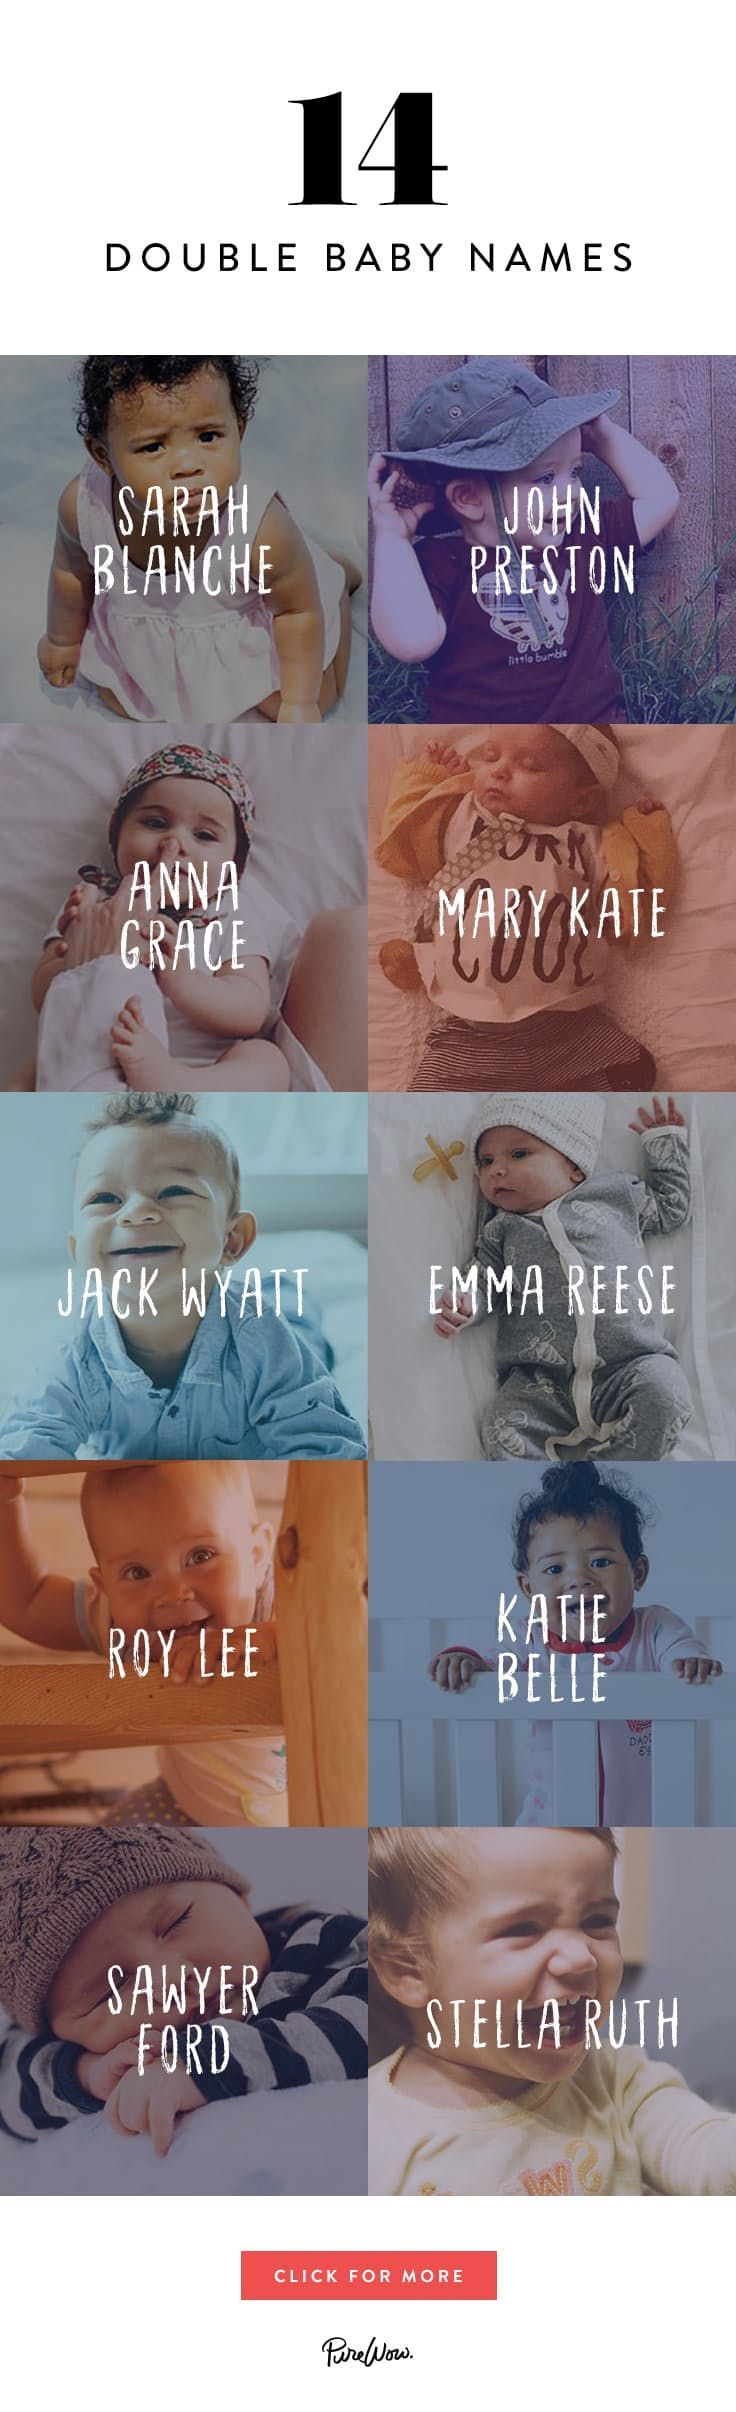 double baby names that are too cute for words babies and pregnancy